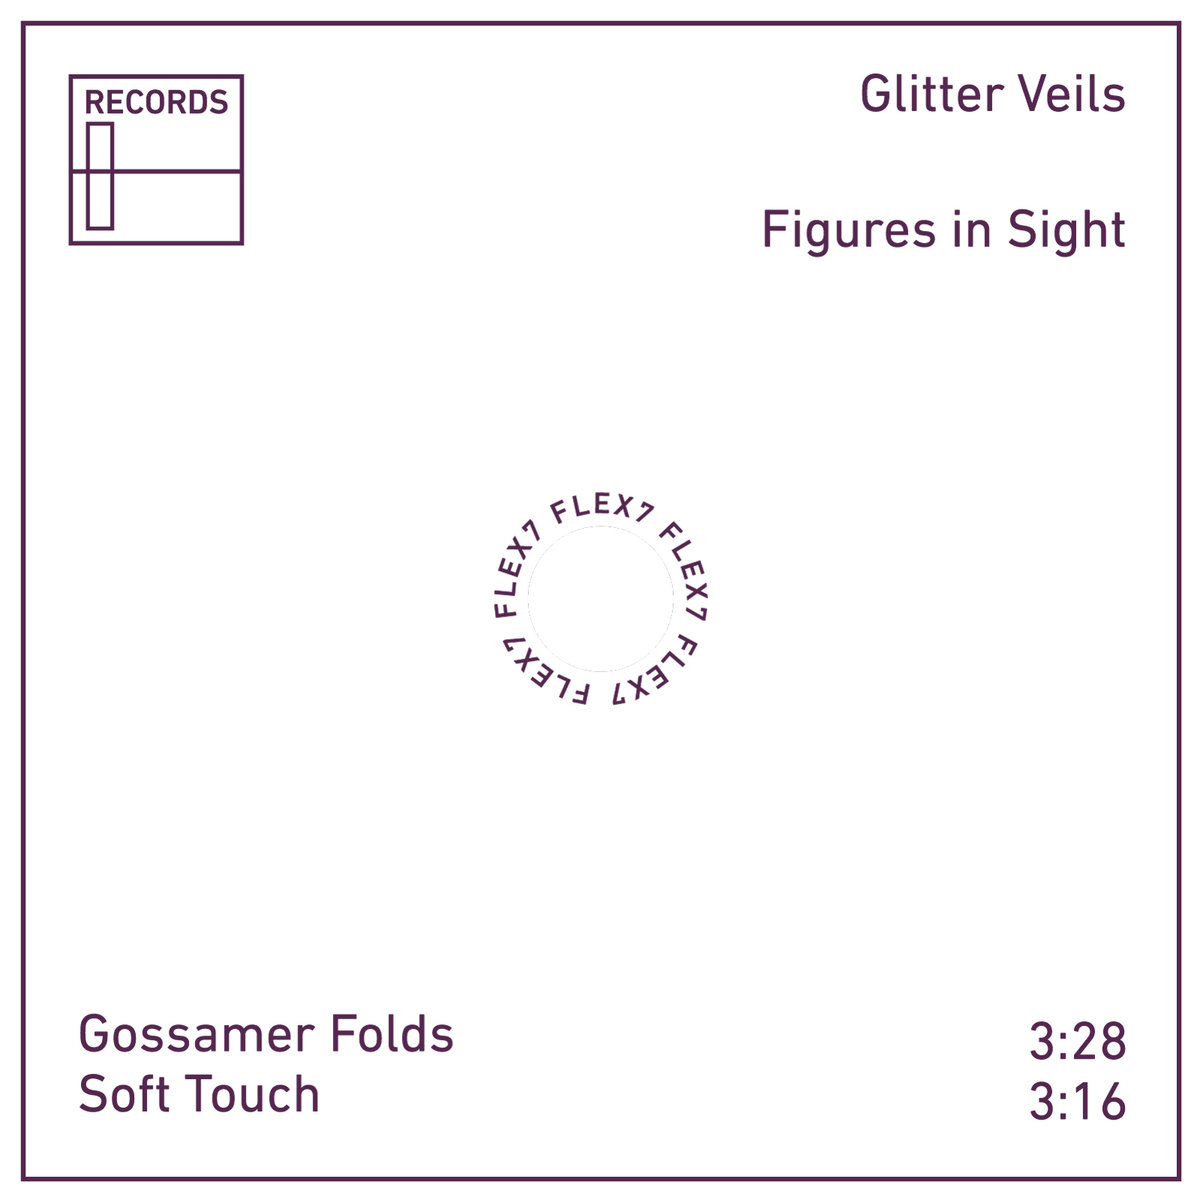 Glitter Veils - Figures In Sight